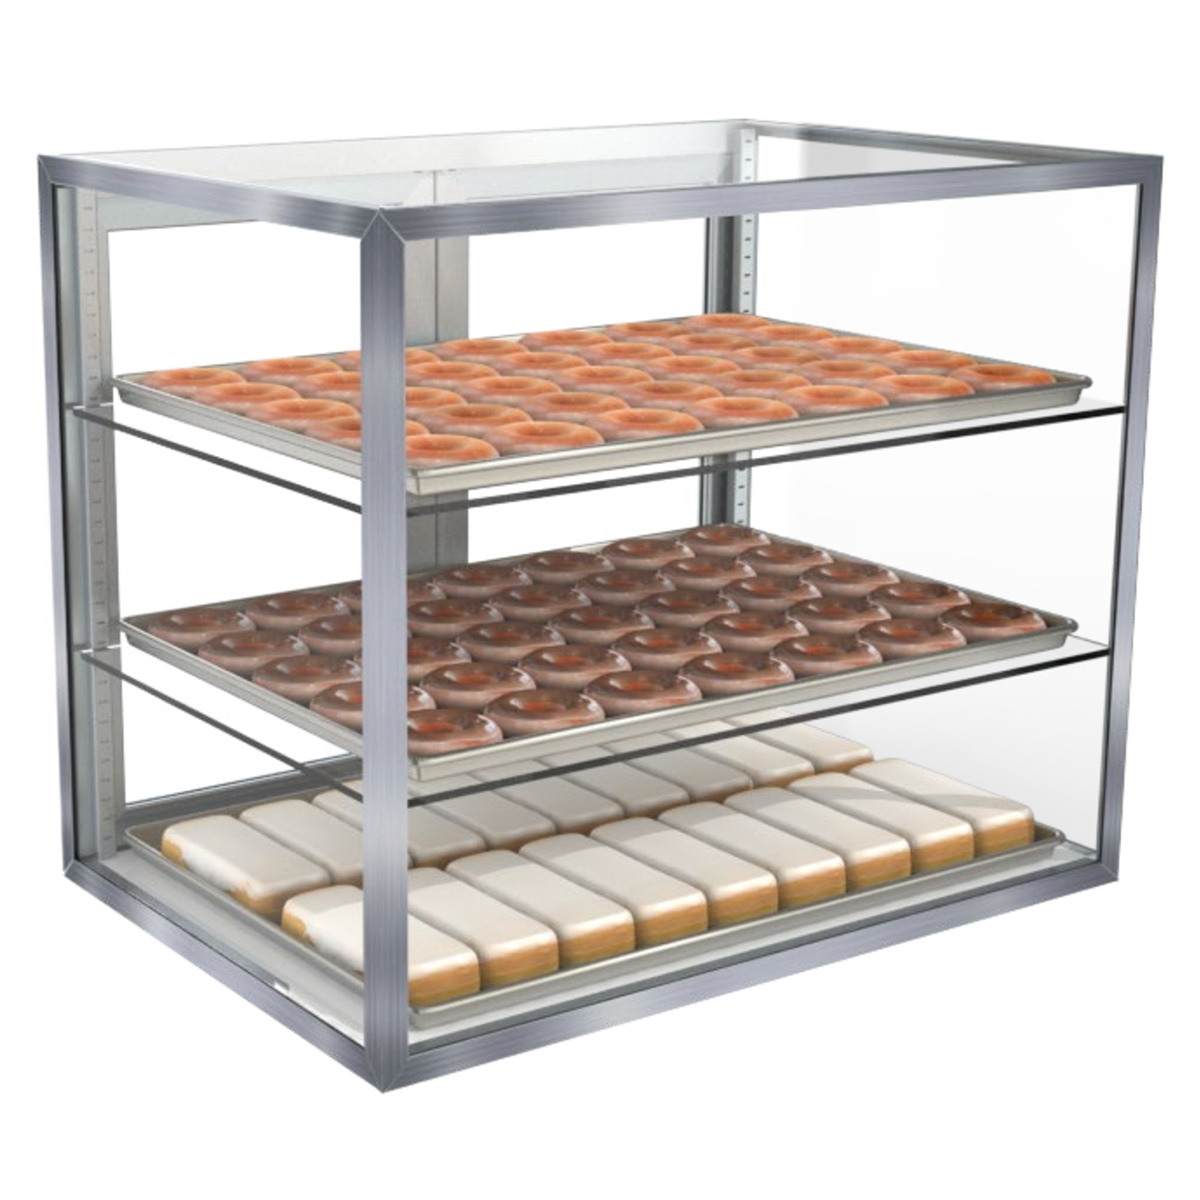 removable rear p acrylic load frame countertop bakery metal display trays pastry case countertops doors zoom